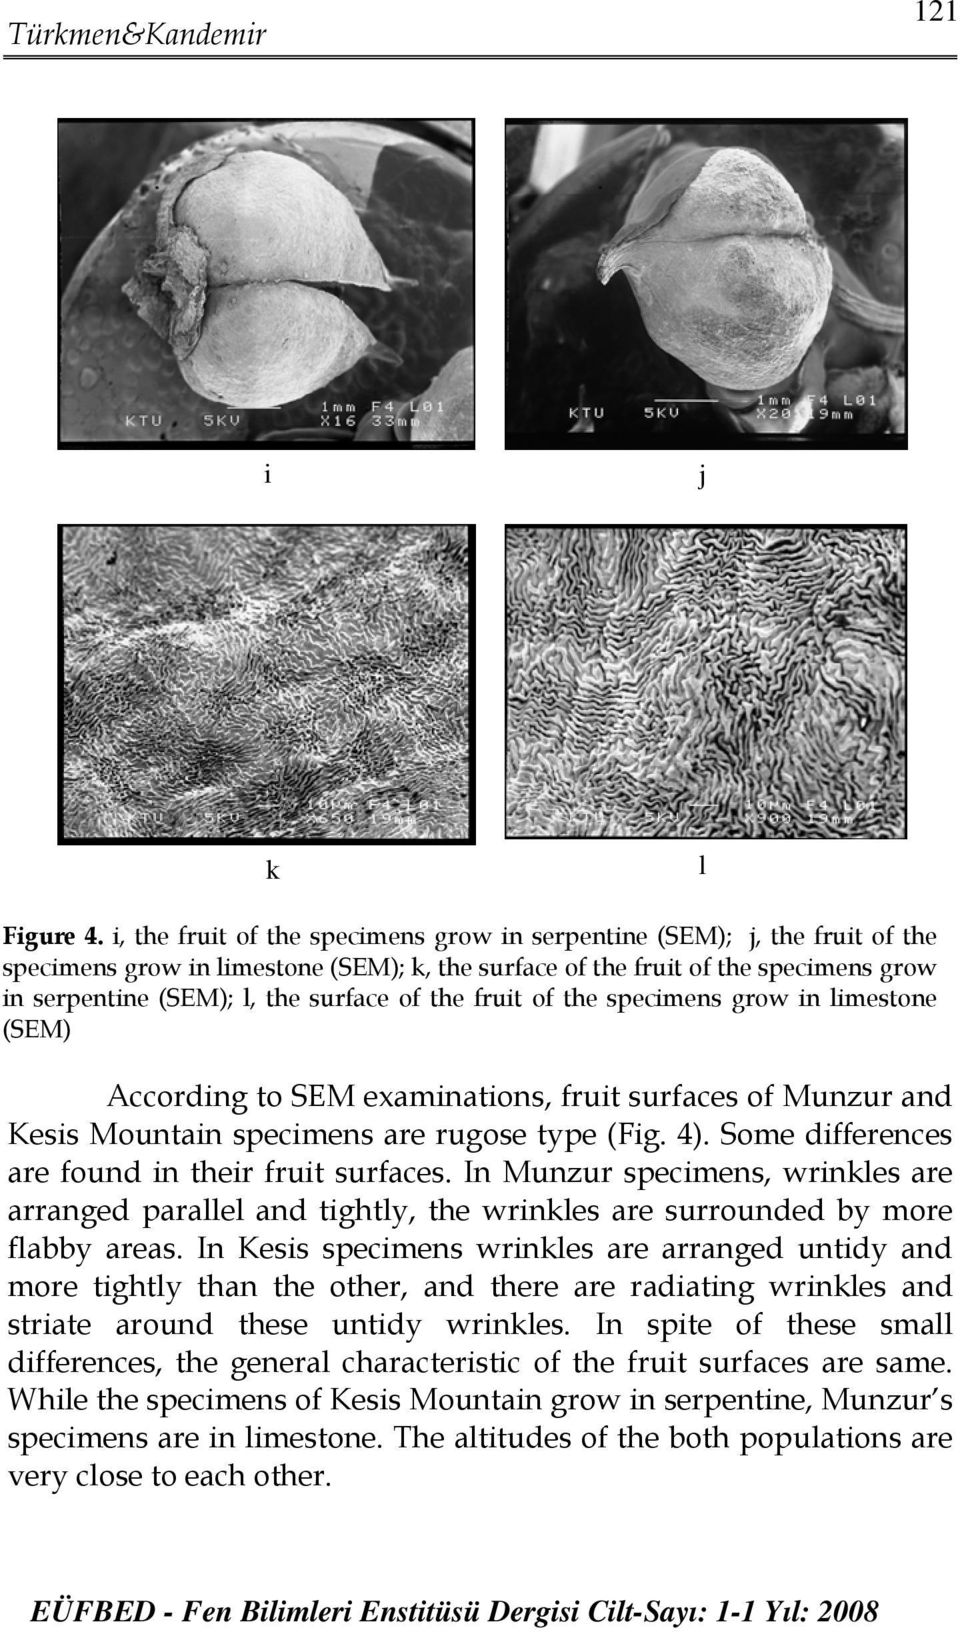 the fruit of the specimens grow in limestone (SEM) According to SEM examinations, fruit surfaces of Munzur and Kesis Mountain specimens are rugose type (Fig. 4).